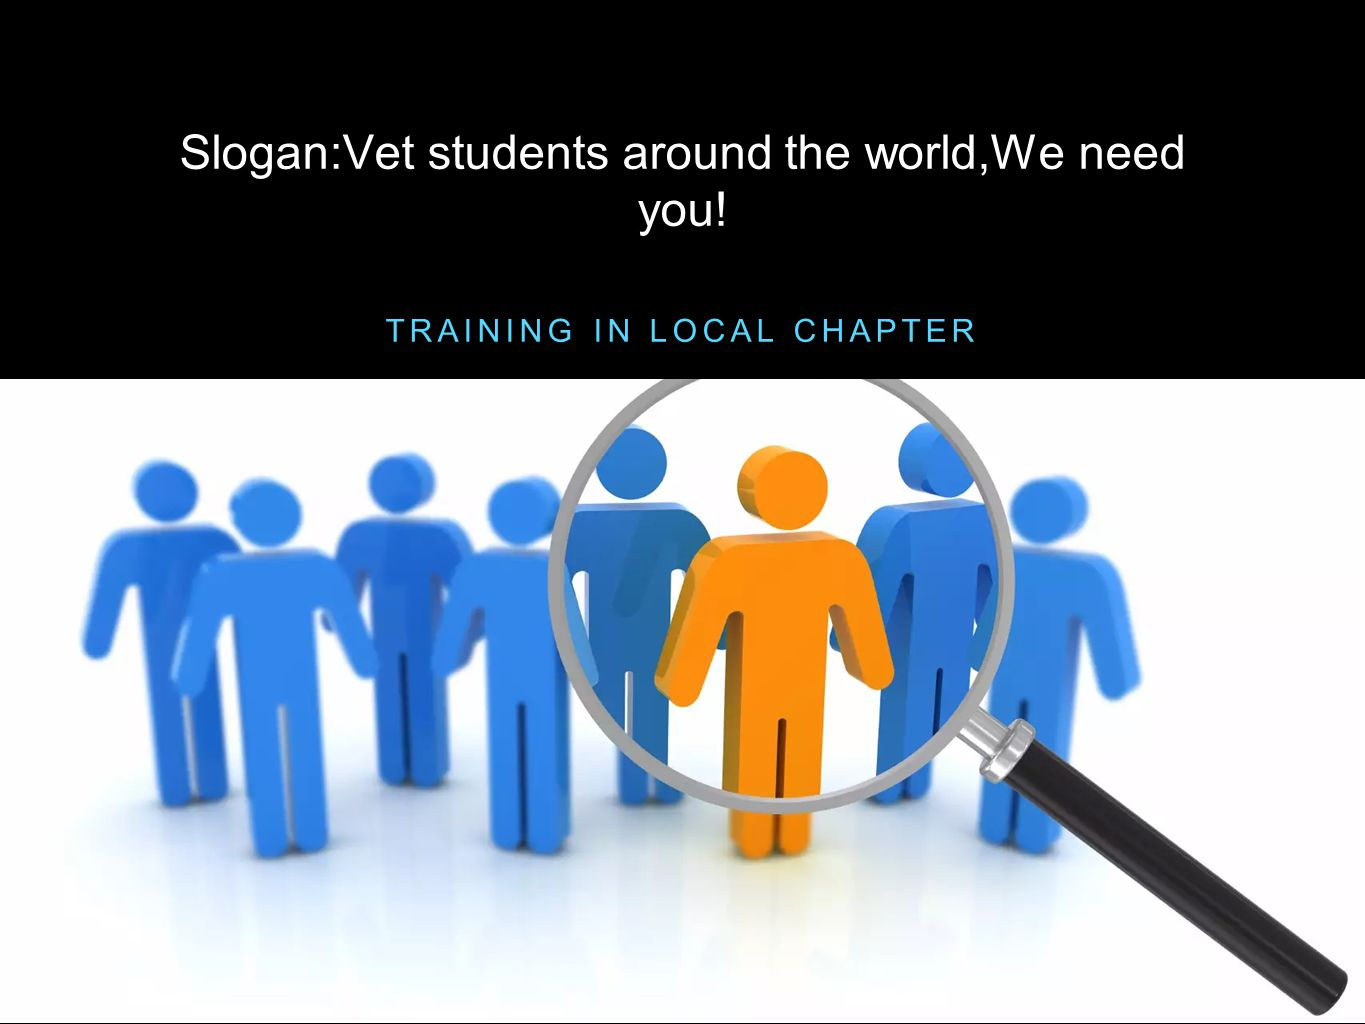 Slogan:Vet students around the world,We need you!